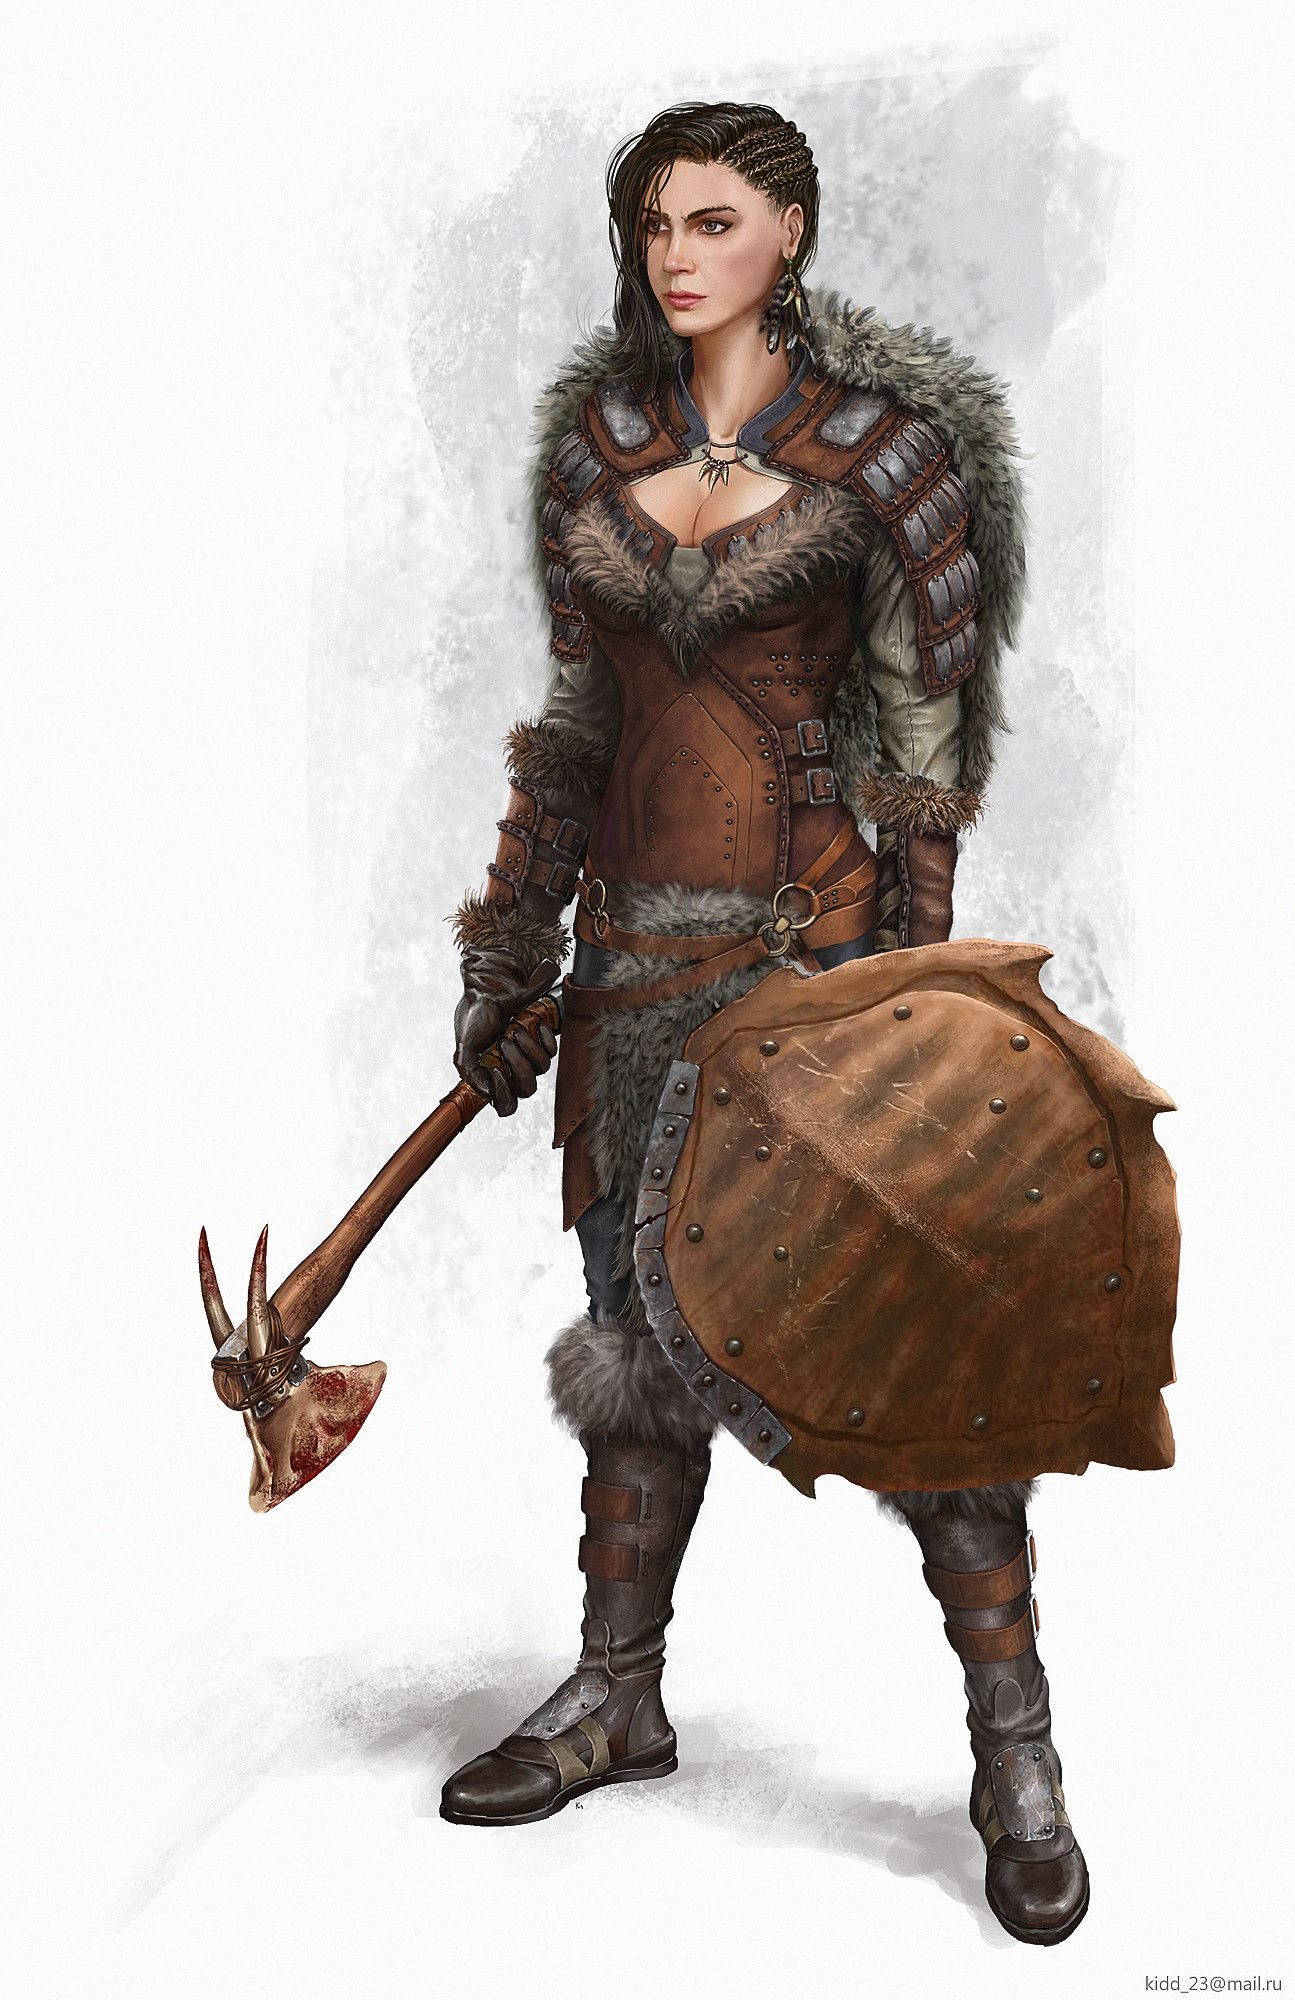 Merlara Lionheart, female warrior, female barbarian, great fur armor, skilled warrior, axe and shield, good hairstyle, rpg, dnd, D&D, fantasy world, character concept by pintrest search